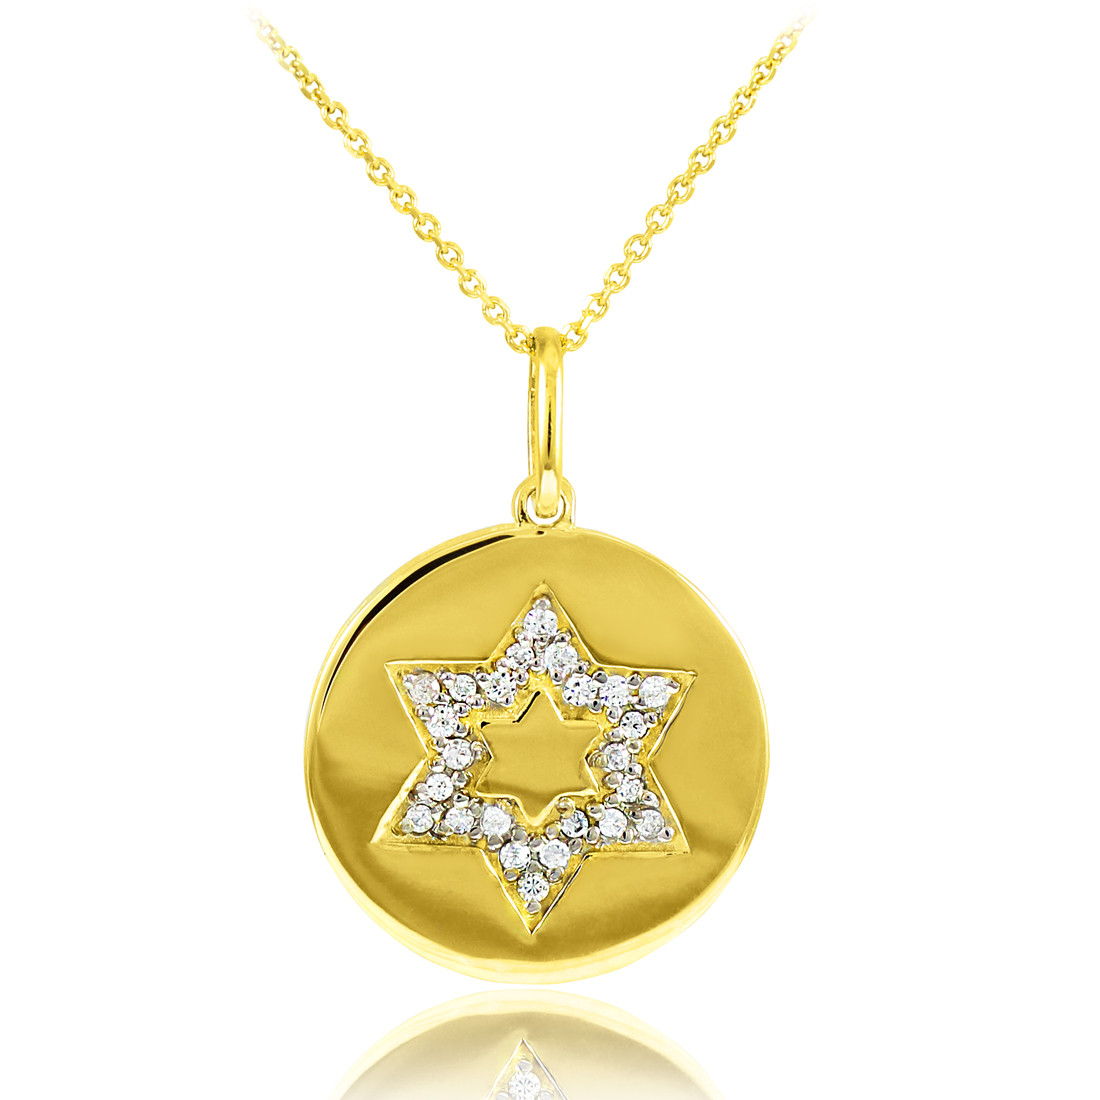 14k polished gold medallion star of david diamond pendant for What is gold polished jewelry